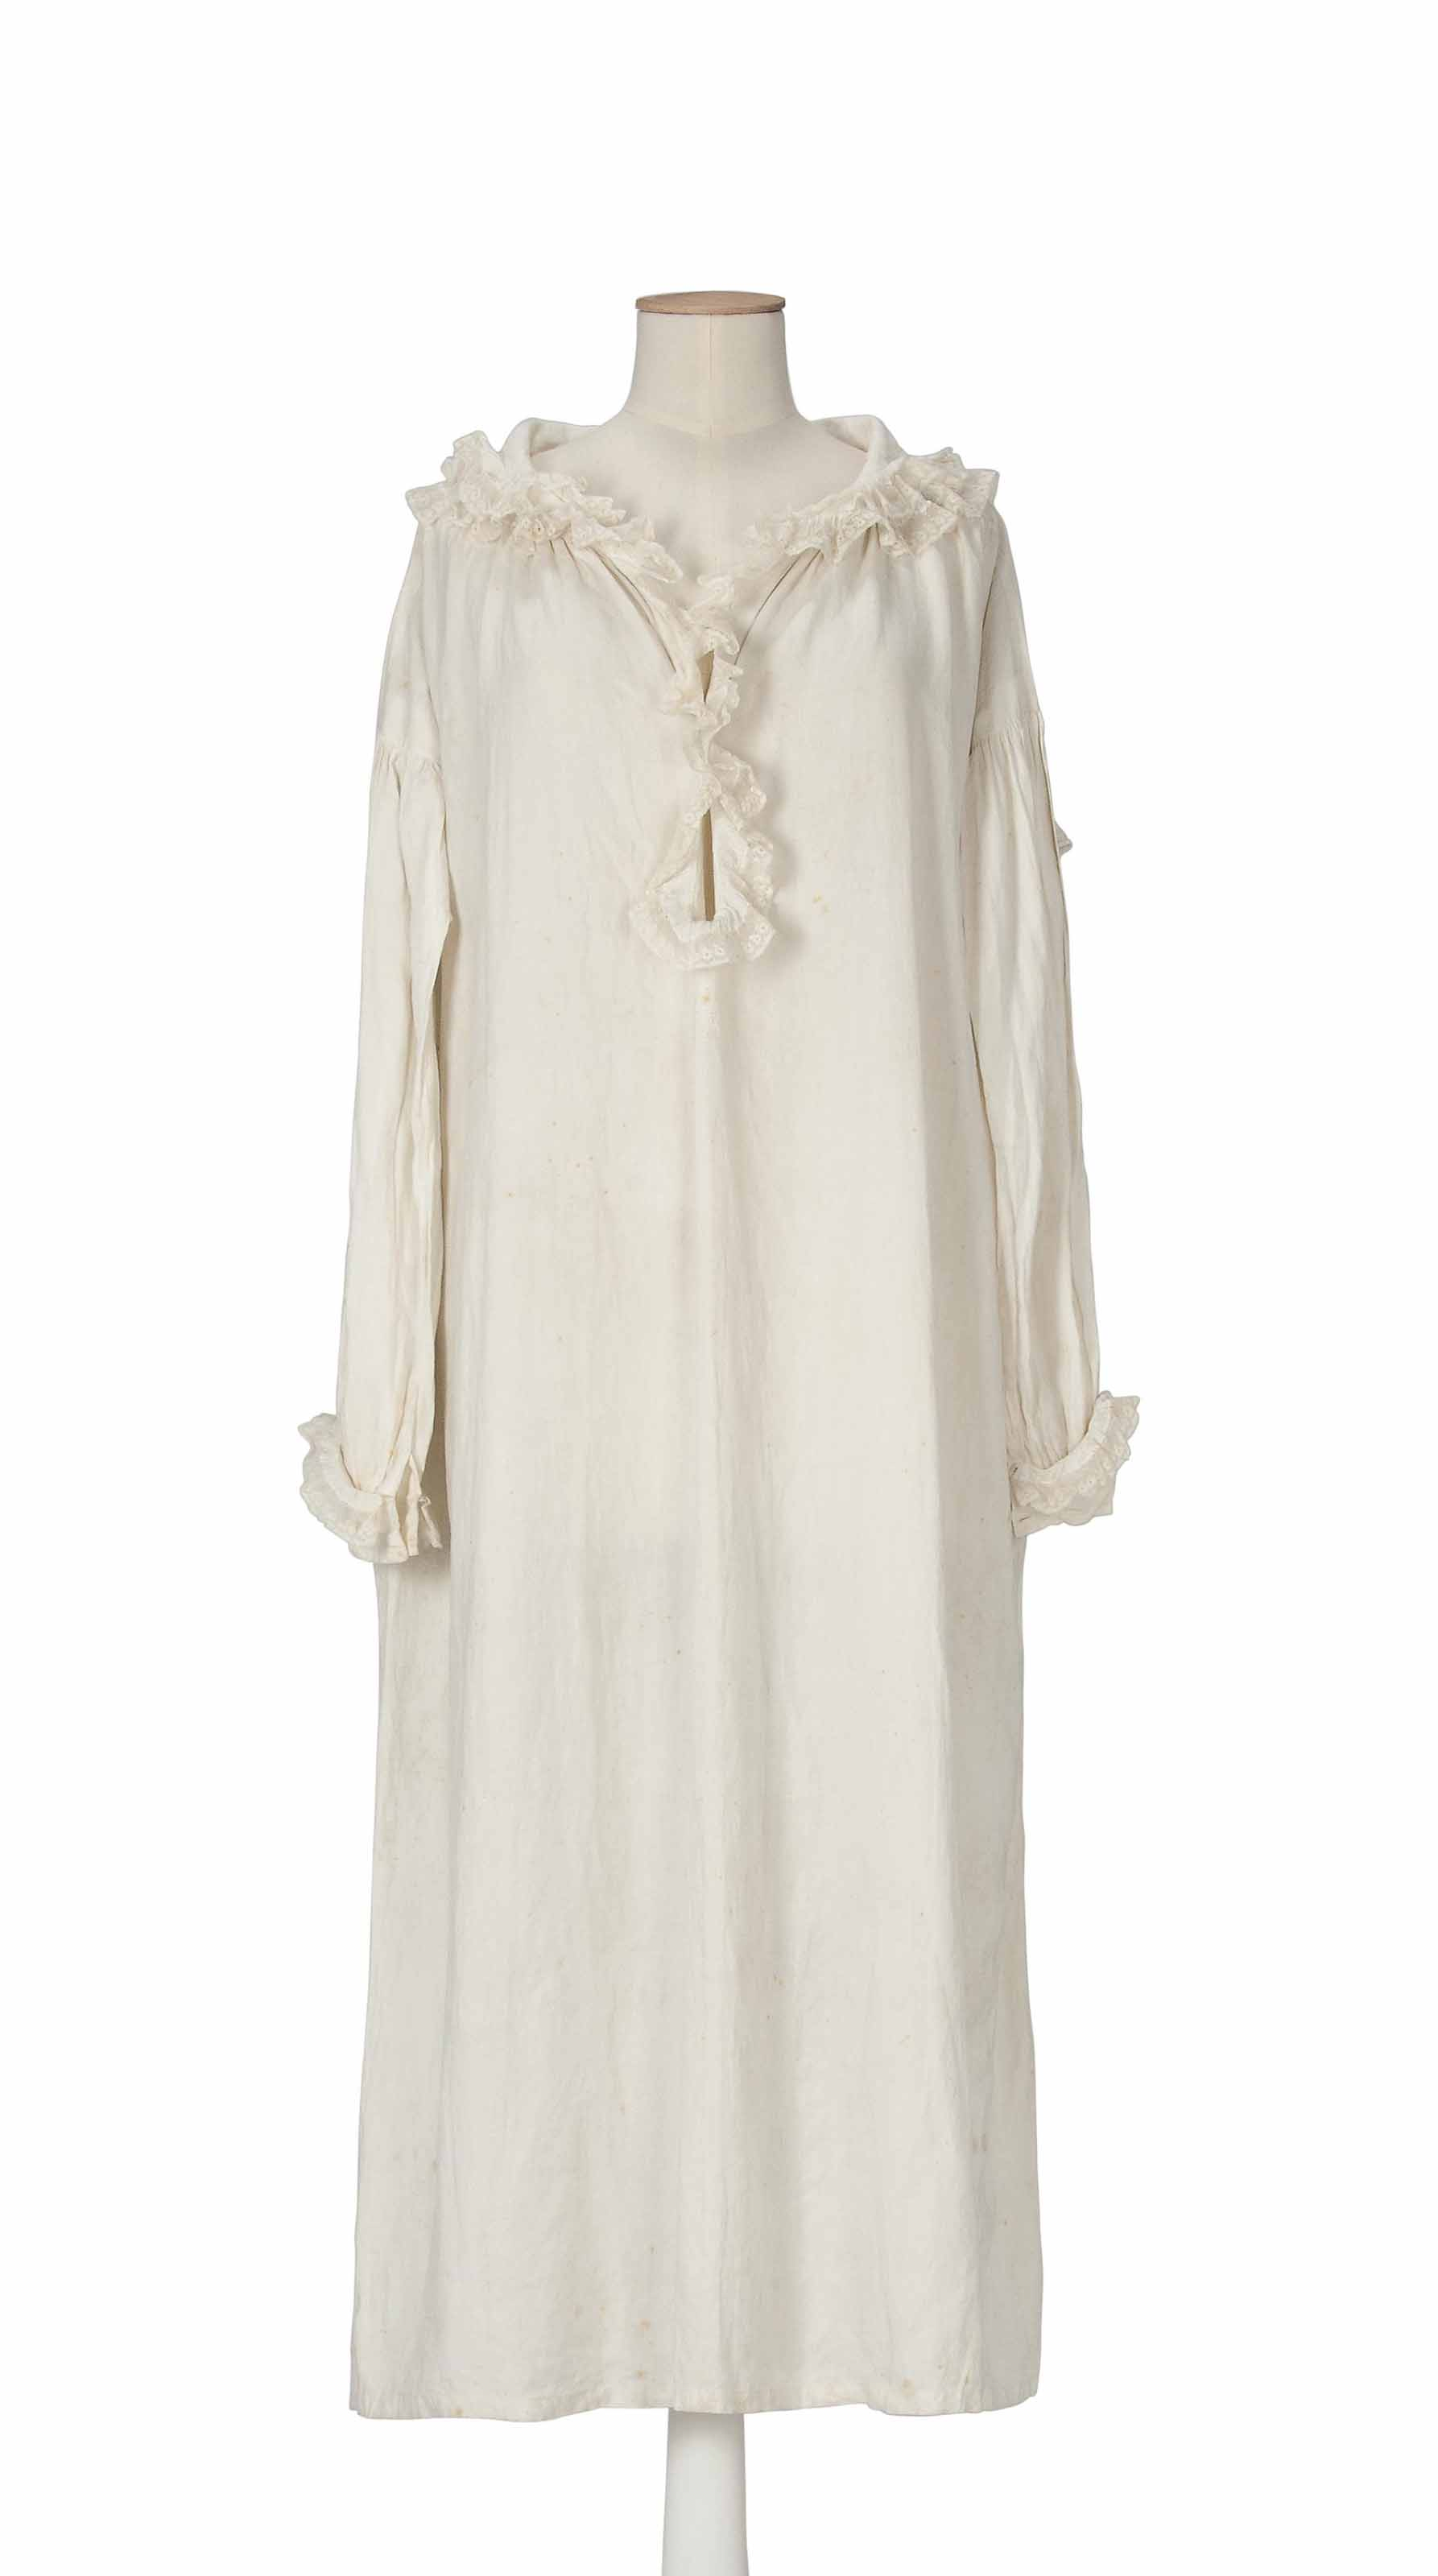 QUEEN VICTORIA (1819-1901) A LAWN COTTON NIGHTGOWN | MID-19TH ...